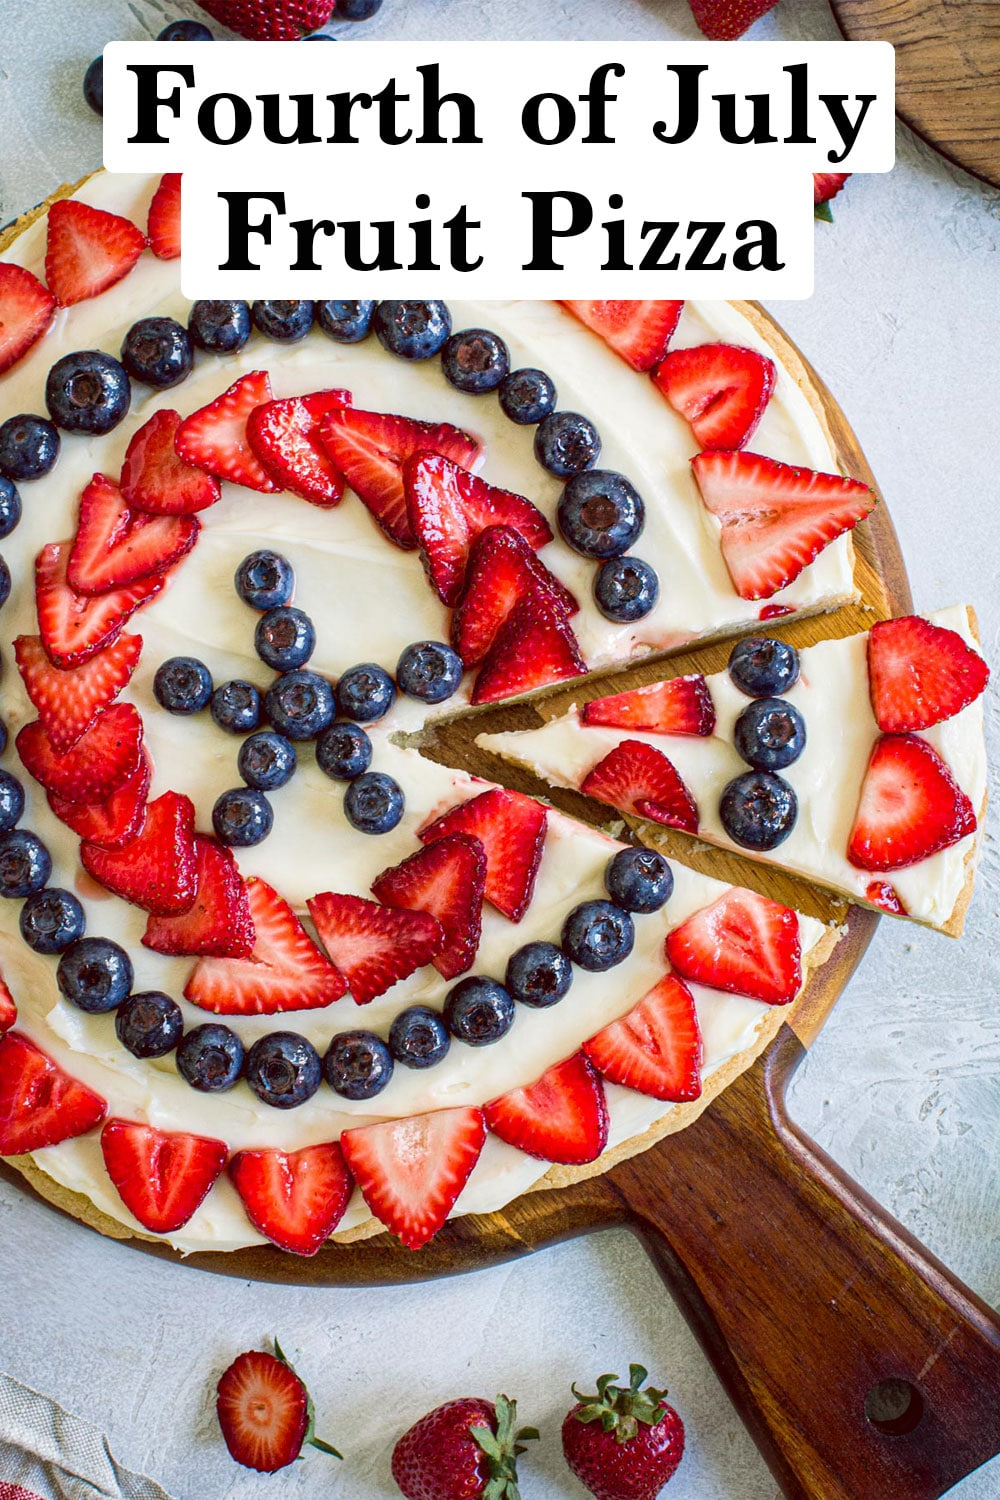 Fruit pizza with a slice cut out on a wooden board.